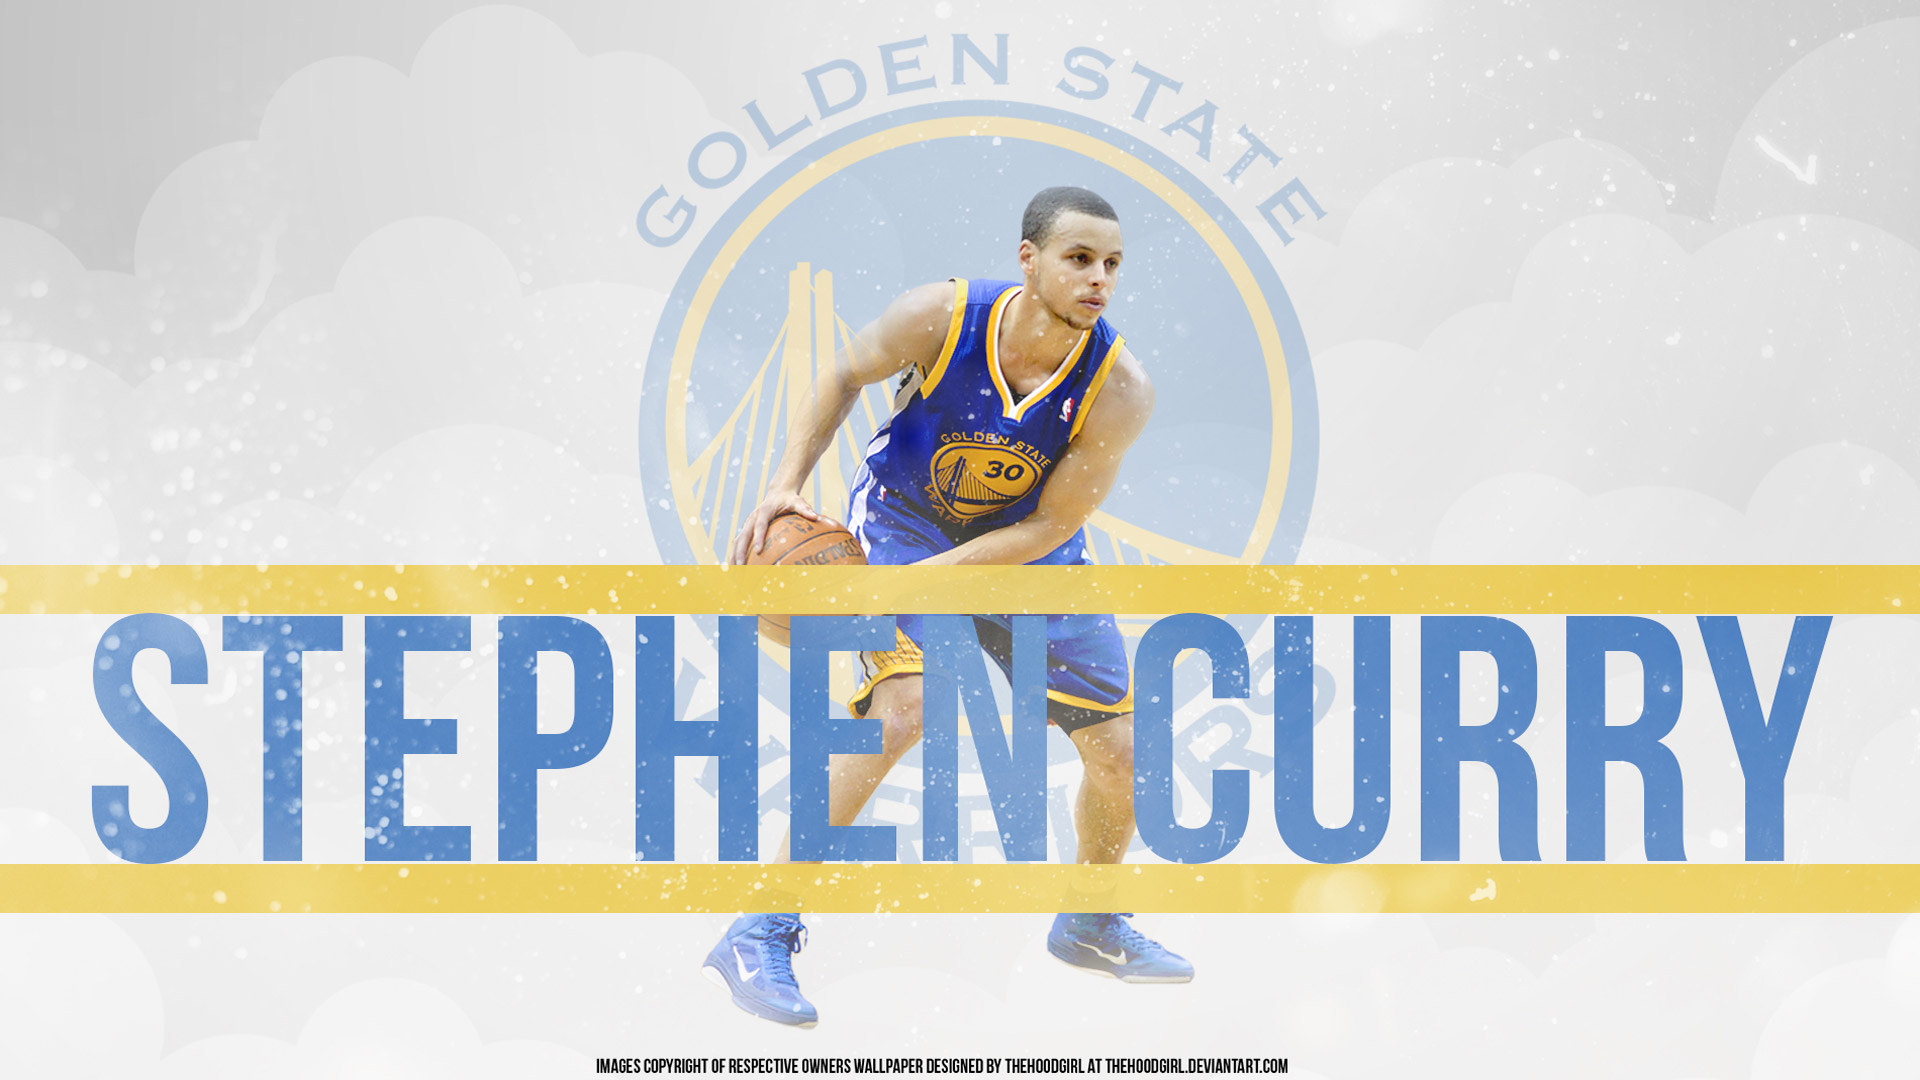 FunMozar Stephen Curry Wallpaper for Iphone 1920x1080